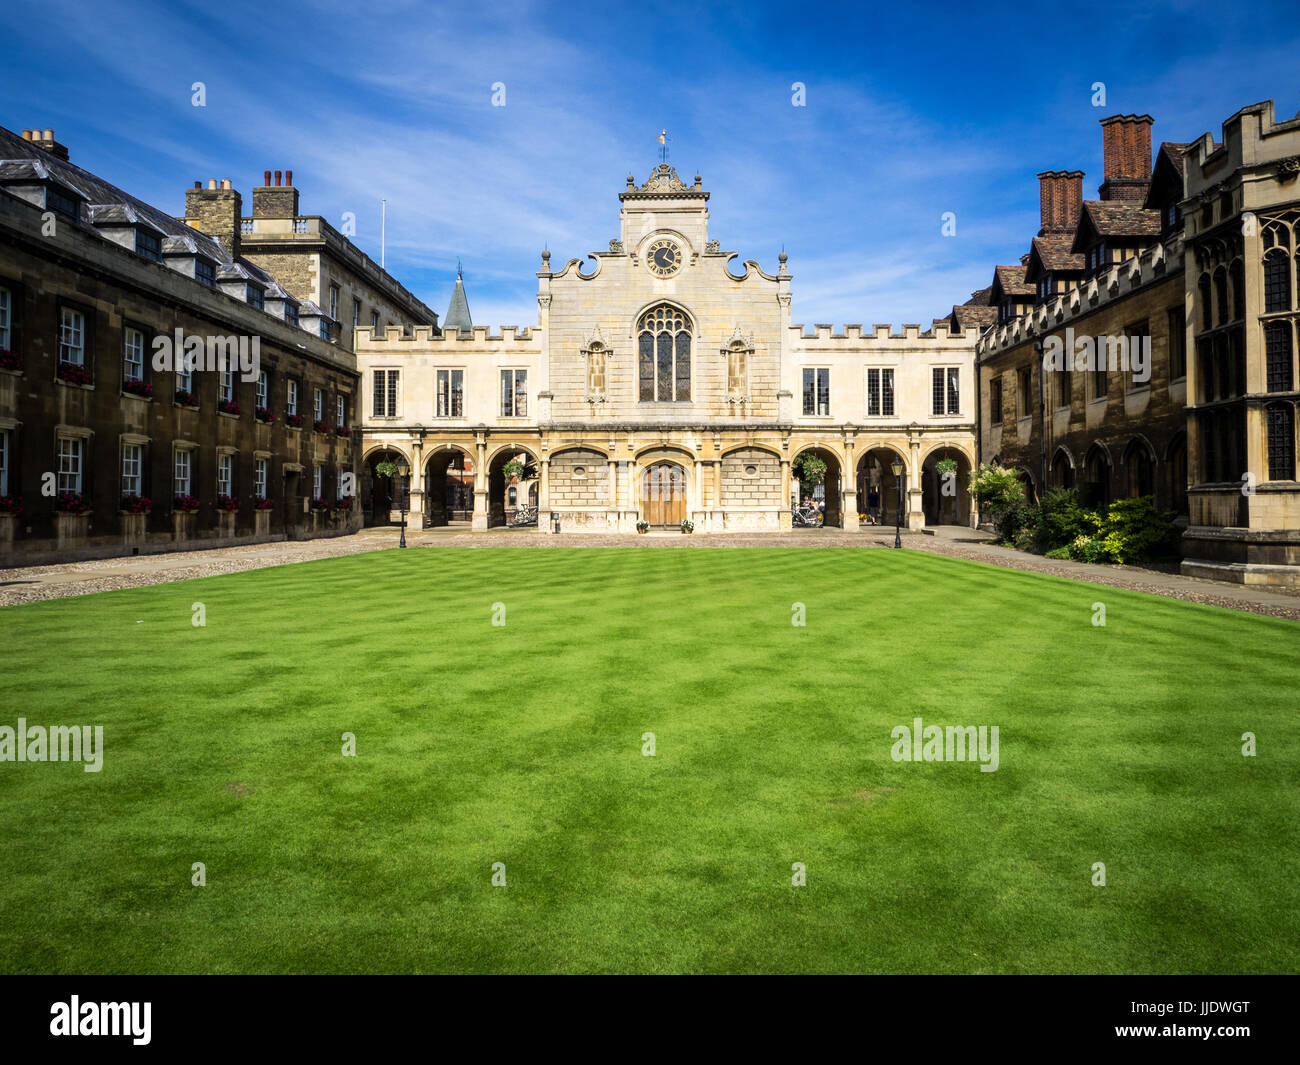 Cambridge - the Clock Tower and Lawns of Peterhouse College, part of the University of Cambridge. The college was - Stock Image